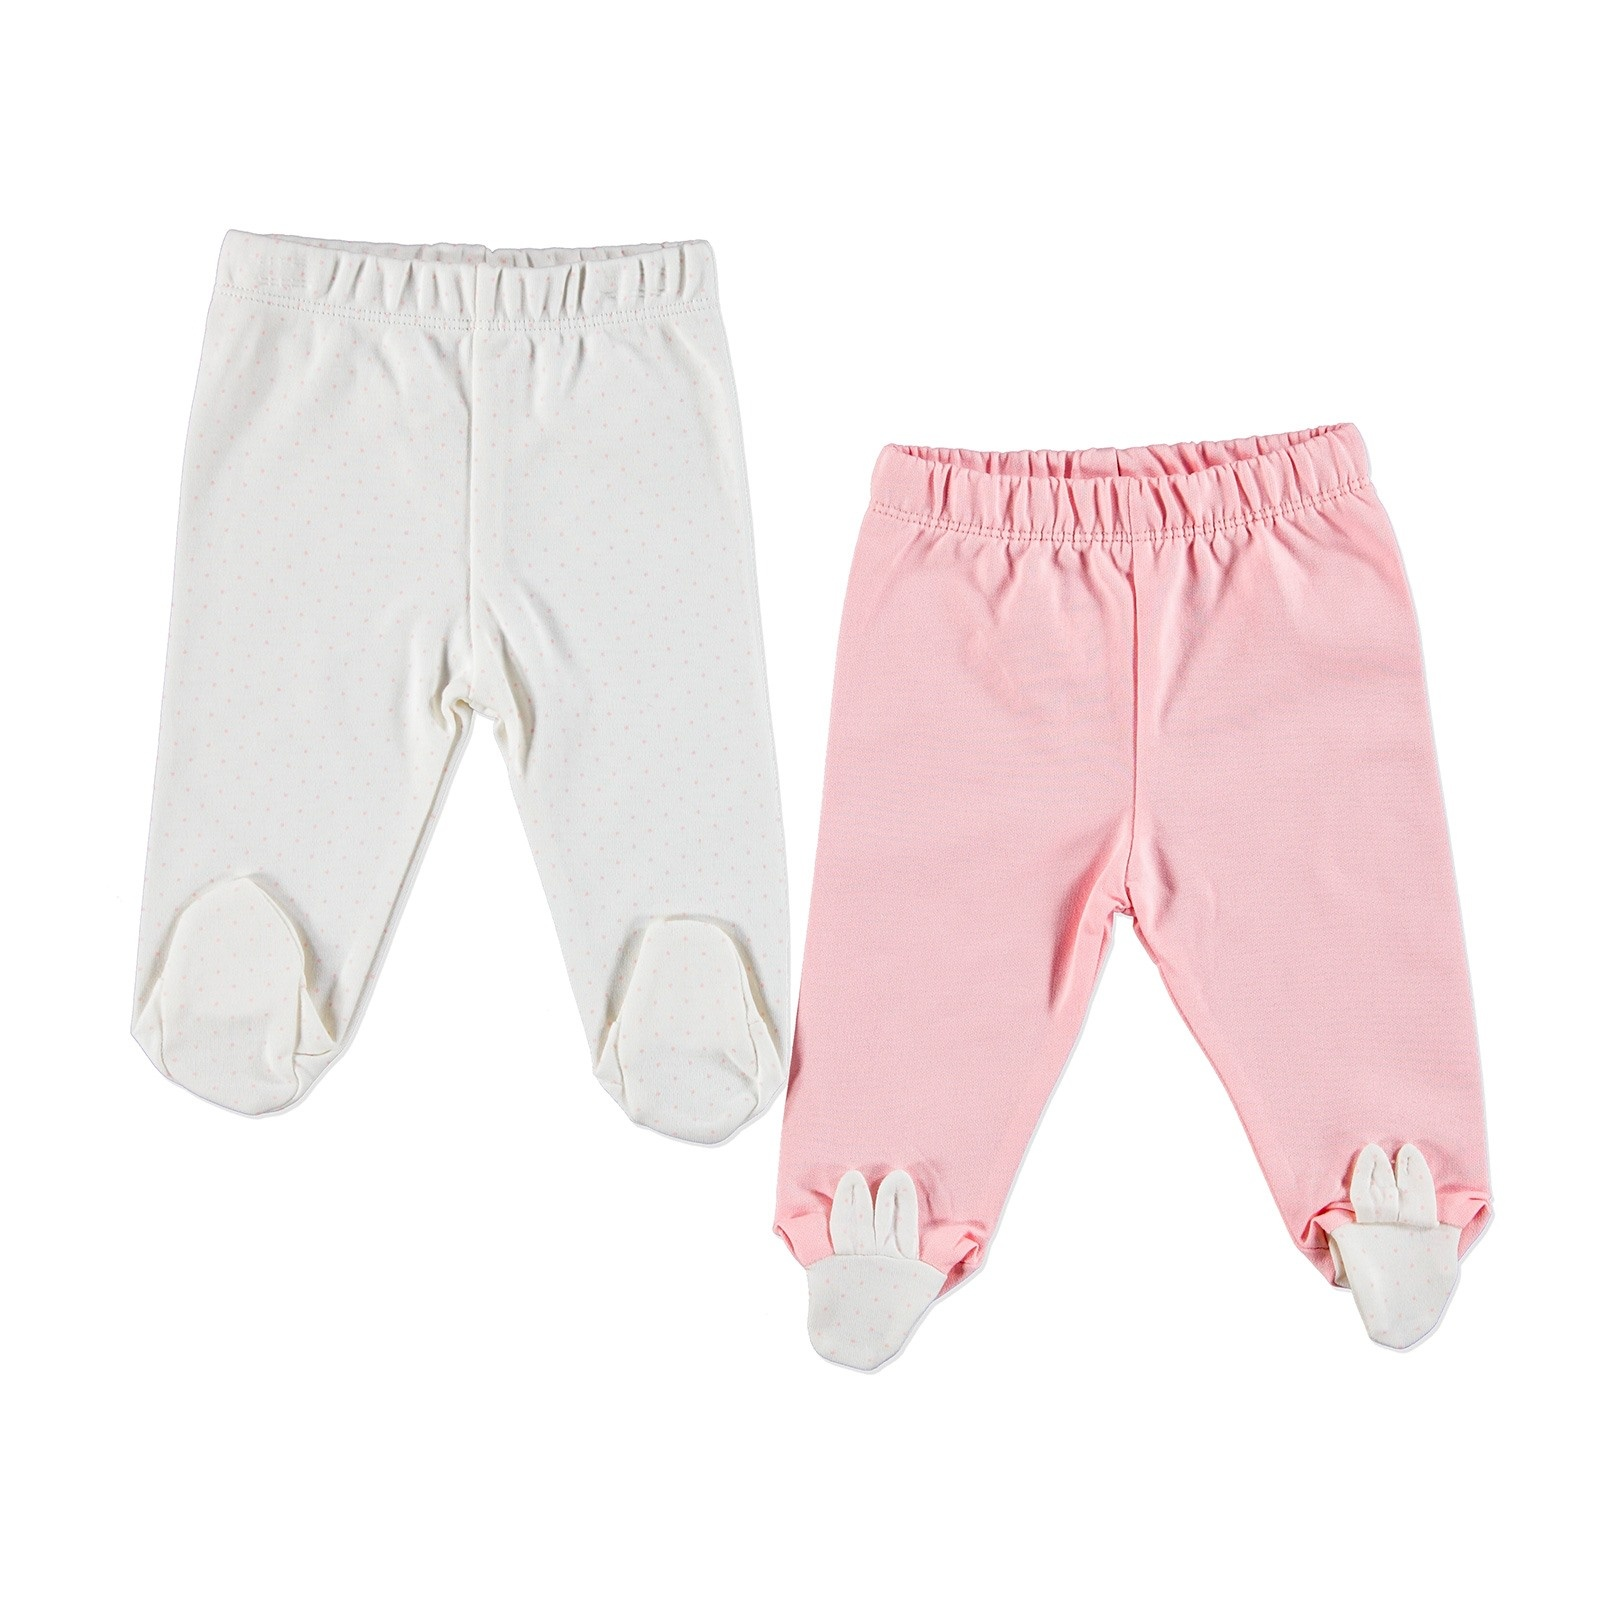 Ebebek For My Baby Bunny Footed Pants 2 Pcs